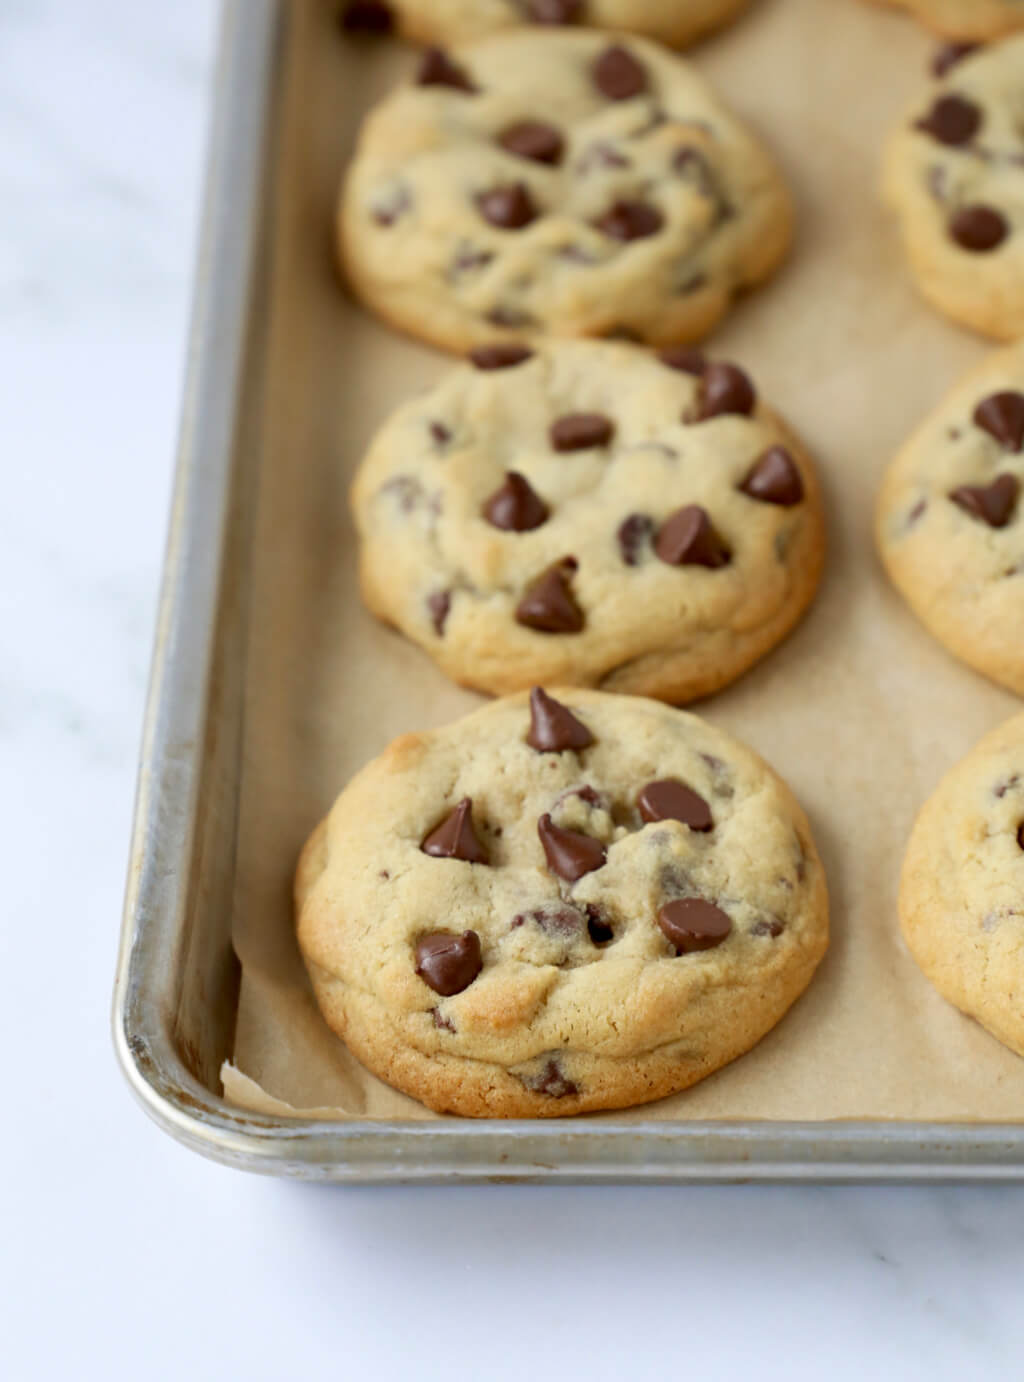 a sheet pan lined with chocolate chip cookies fresh out of the oven